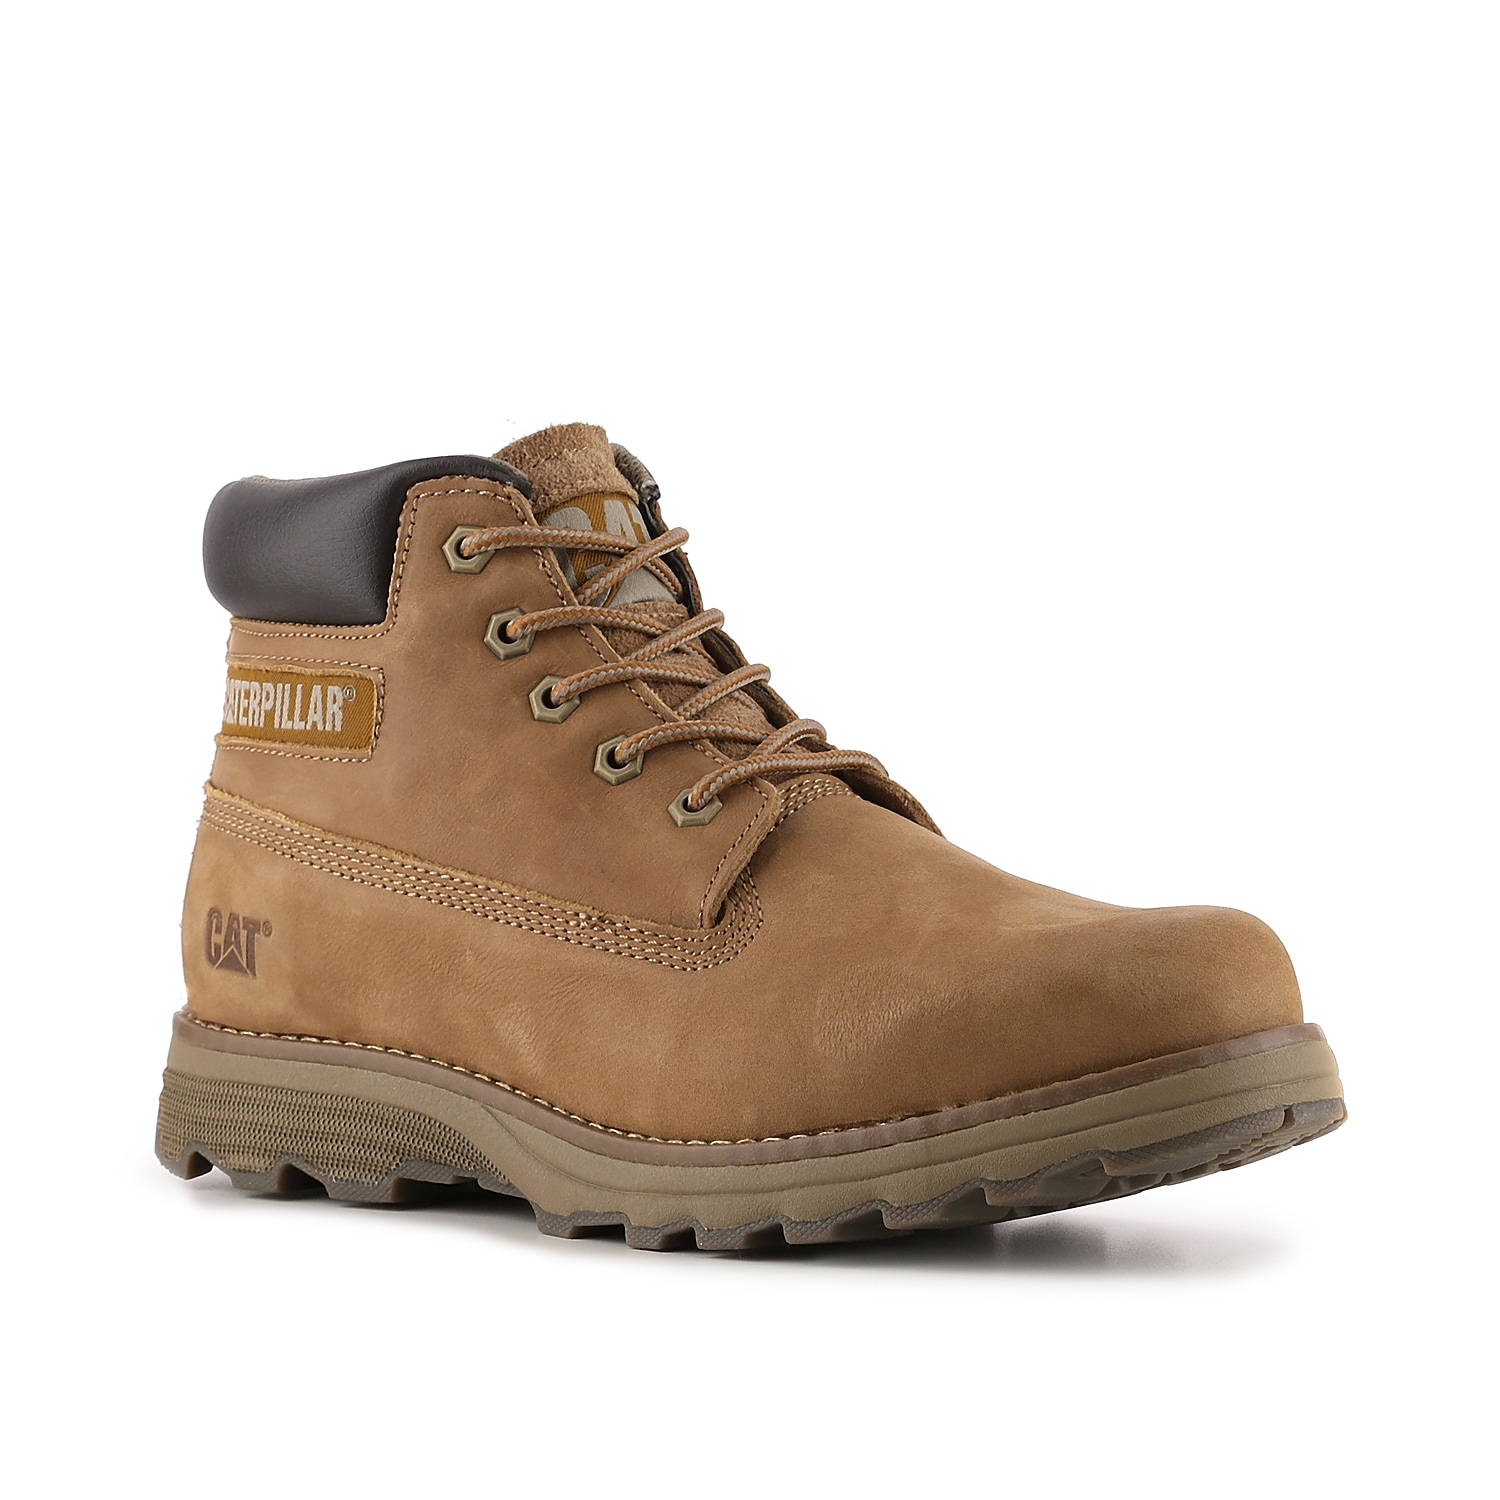 Caterpillar footwear was built to meet the demands of your busy lifestyle and the Founder boot will do just that! This nubuck lace-up boot with suede and leather accents is lightweight and full of cushioning for comfort and style all day long.